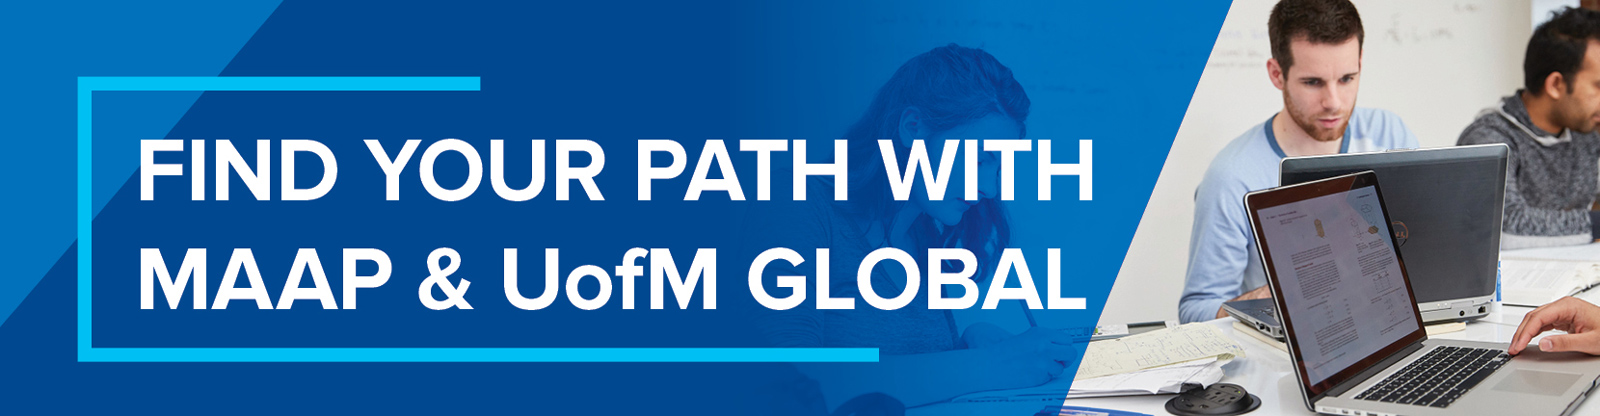 Find Your Path with MAAP and UofM Global